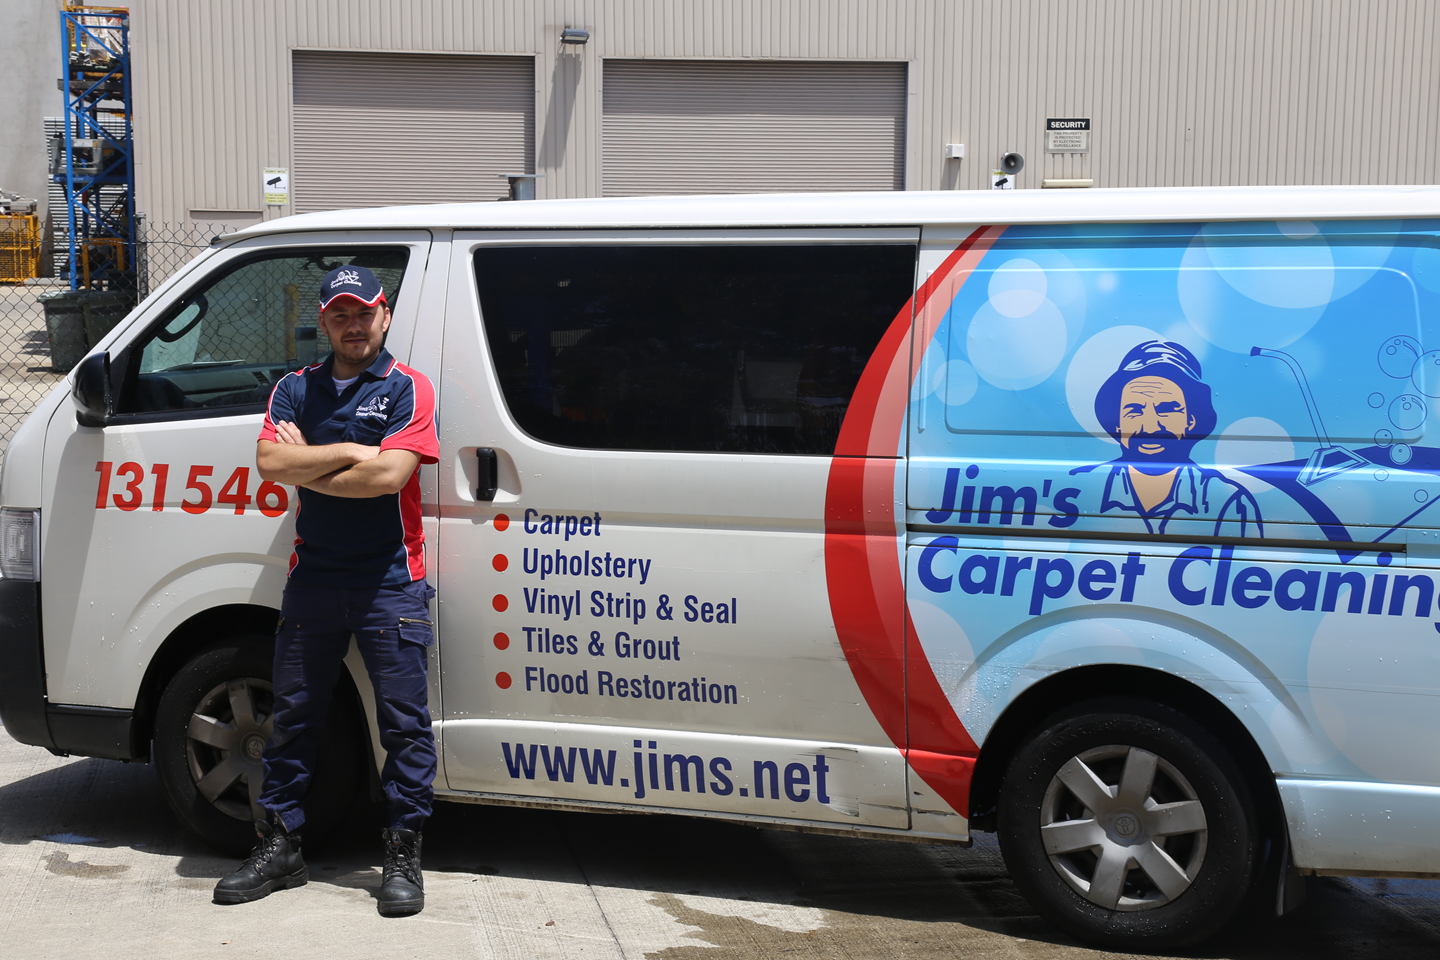 Jim's Carpet Cleaning Battery Point